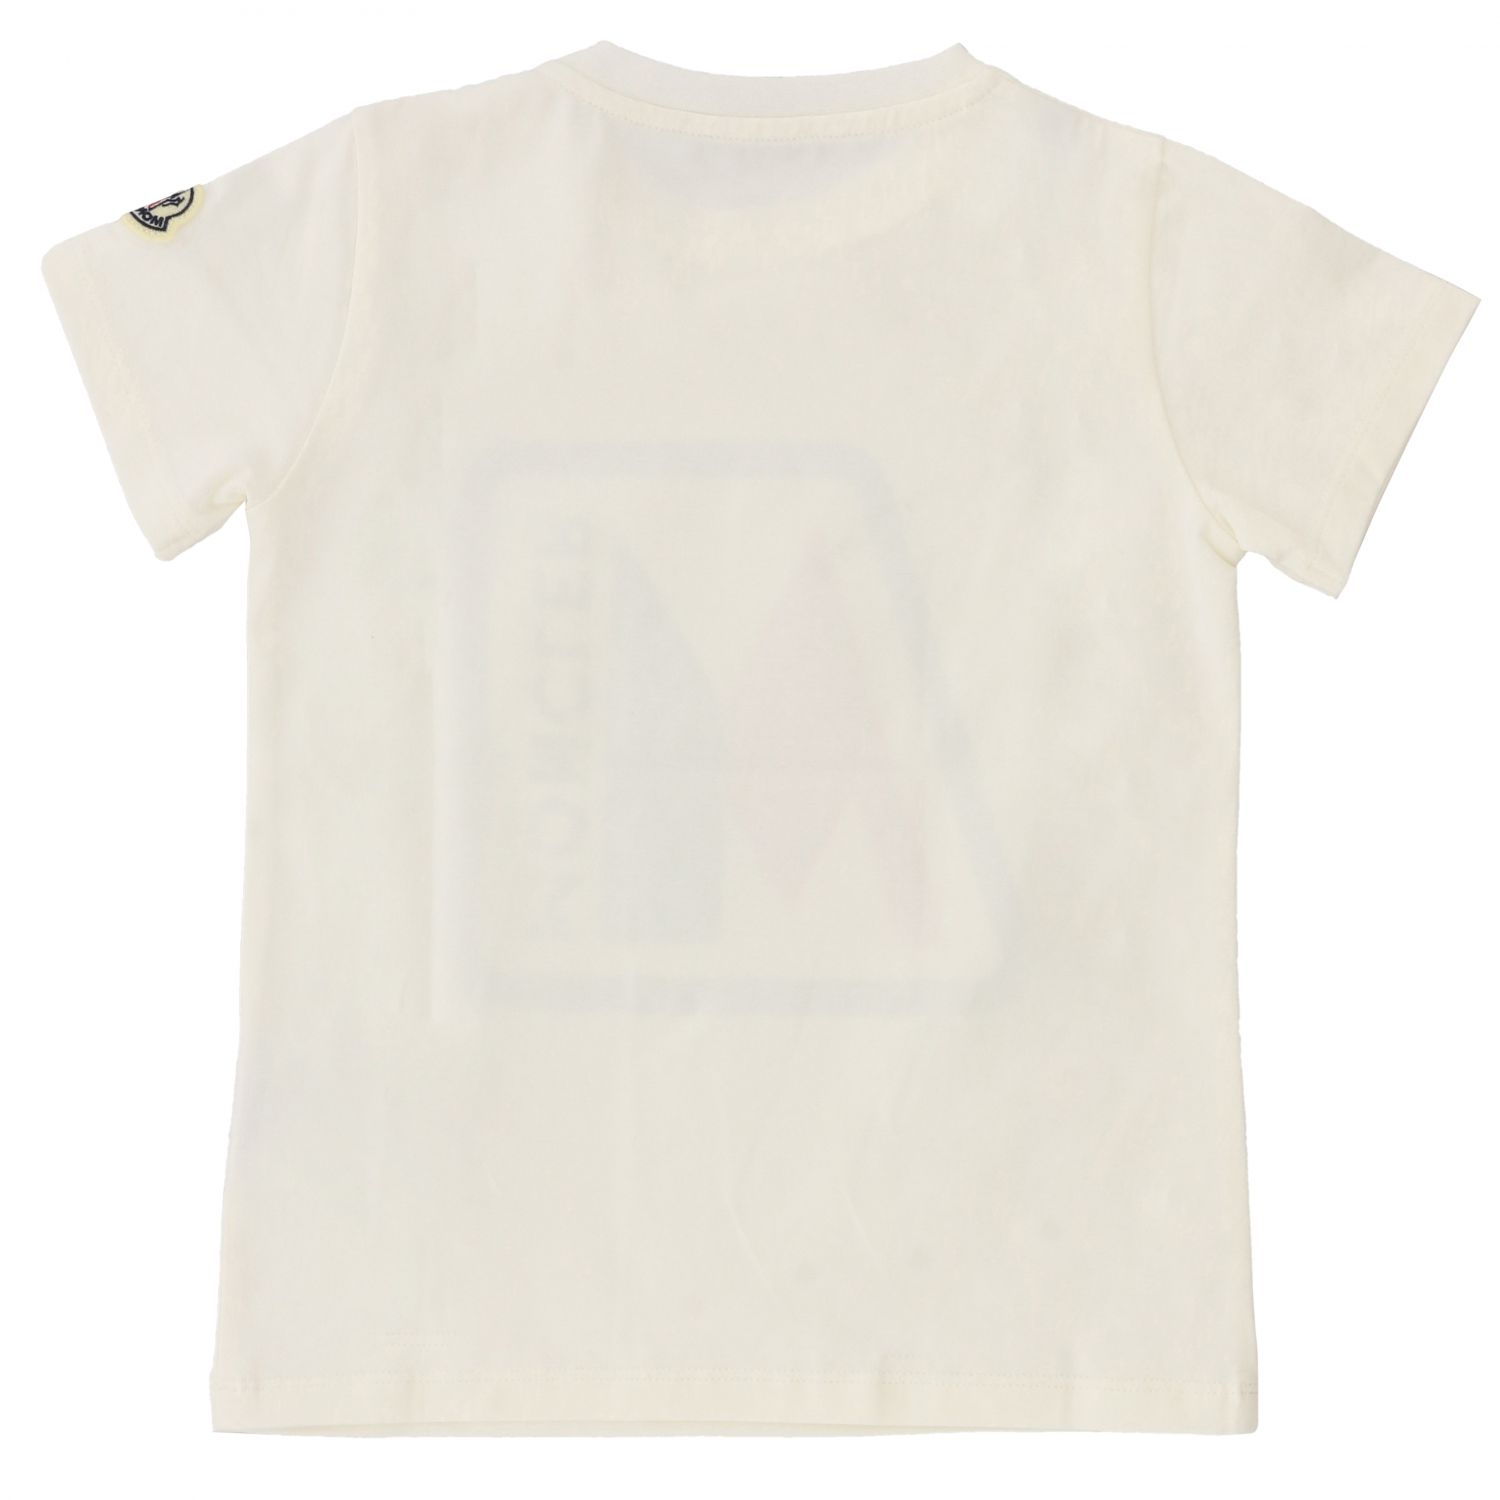 T-shirt kids Moncler white 2